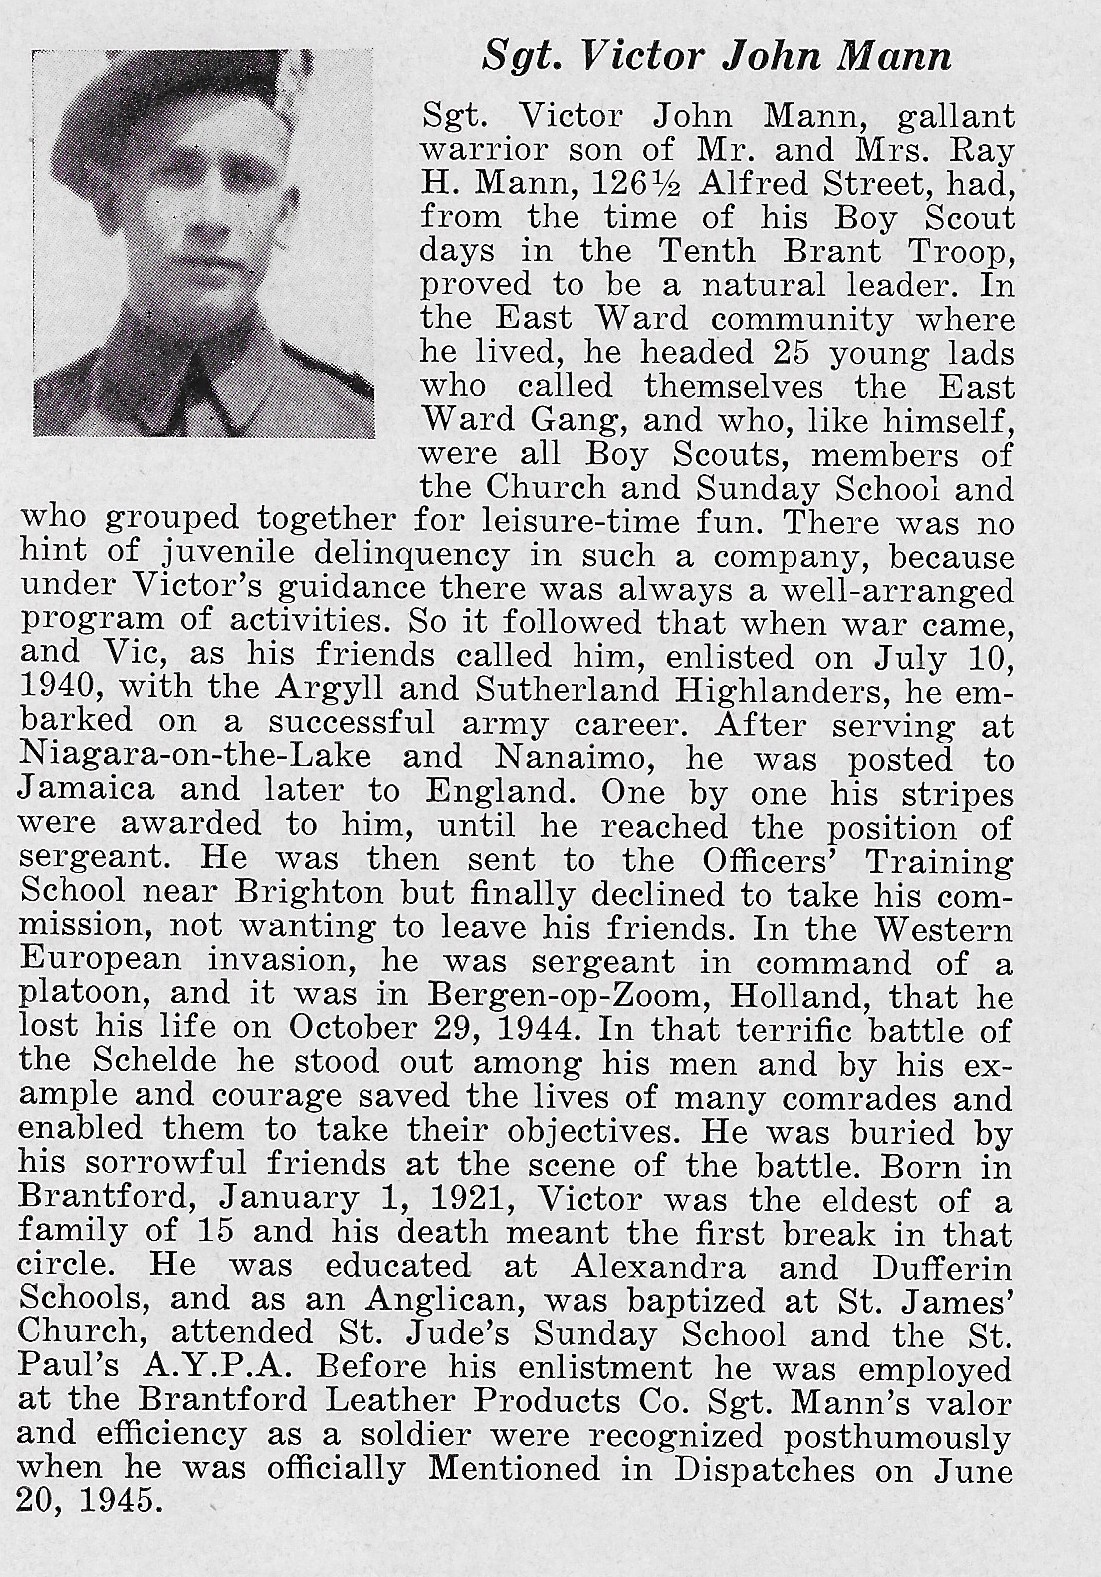 Biography– Album of Honour for Brant County World War 11 1939 - 1945 Published in 1946 by The Brantford Kinsmen Club and submitted with their permission by Operation Picture Me